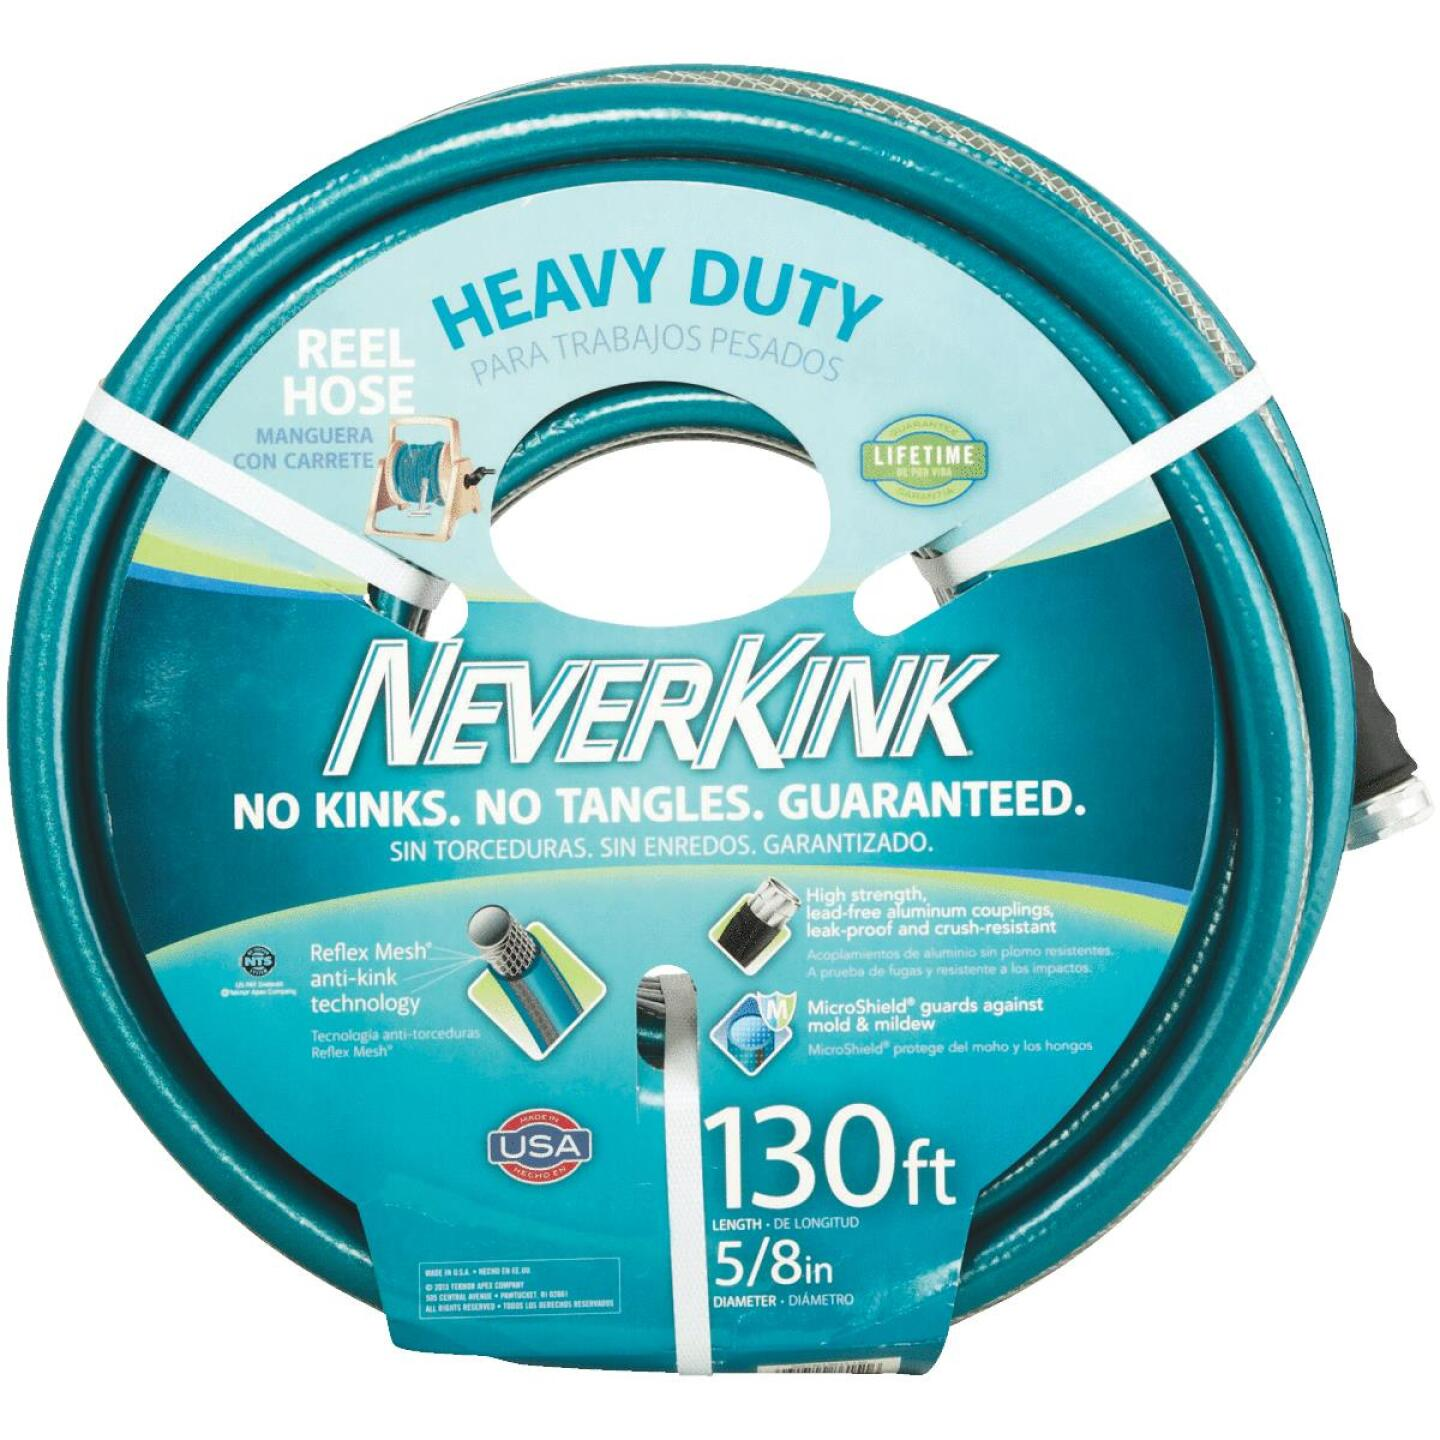 Neverkink 5/8 In. Dia. x 130 Ft. L. Heavy-Duty Garden Hose Image 1